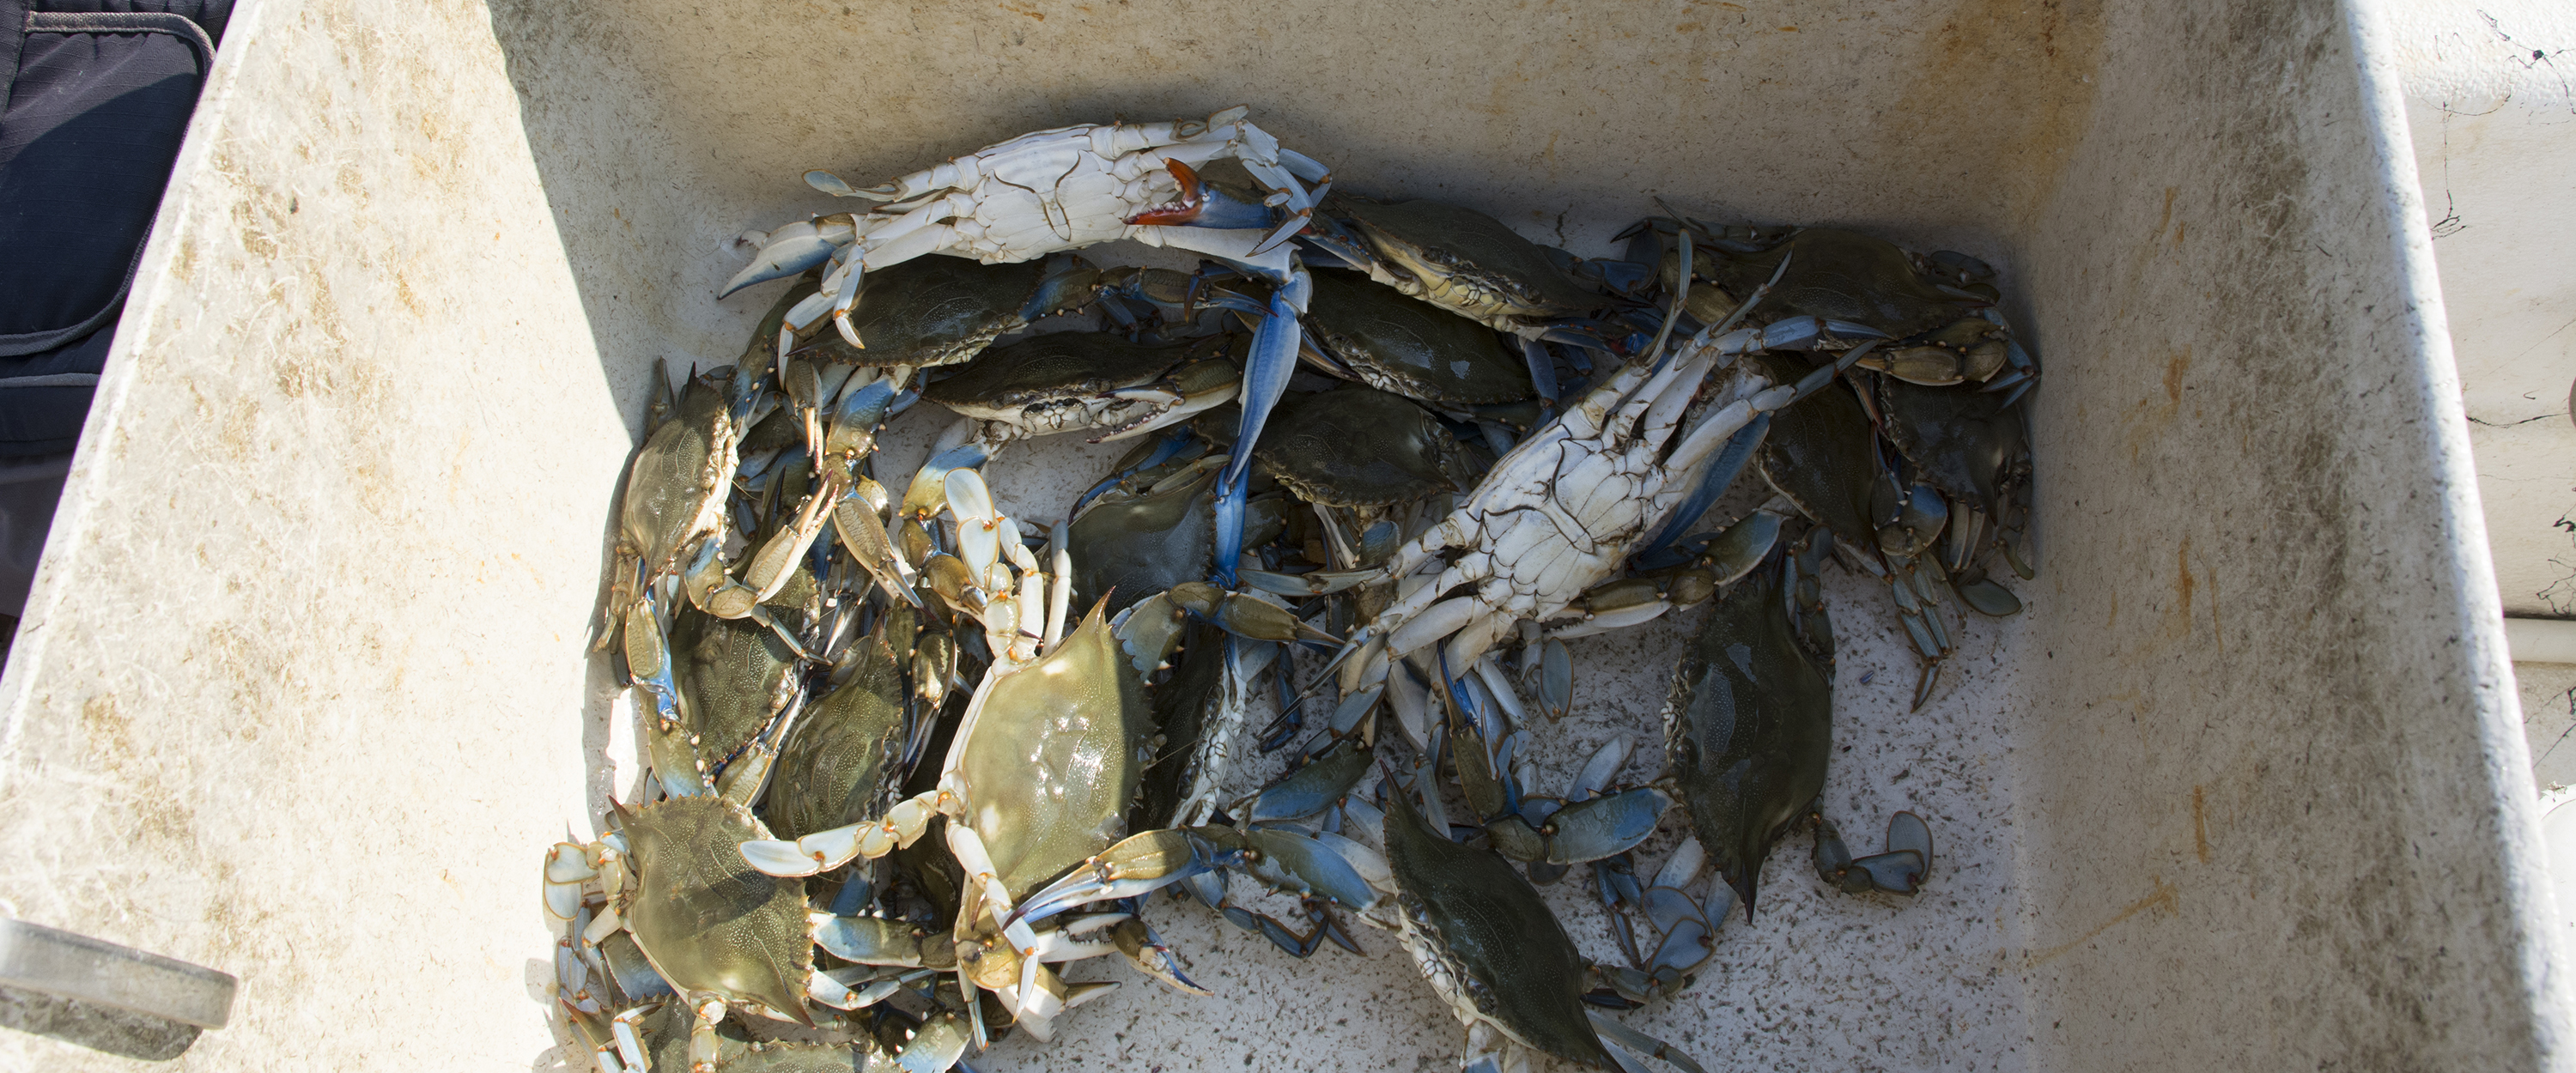 Catching crabs with baited bags on line. Crabs netted at surface and measured for keeper size on deck.